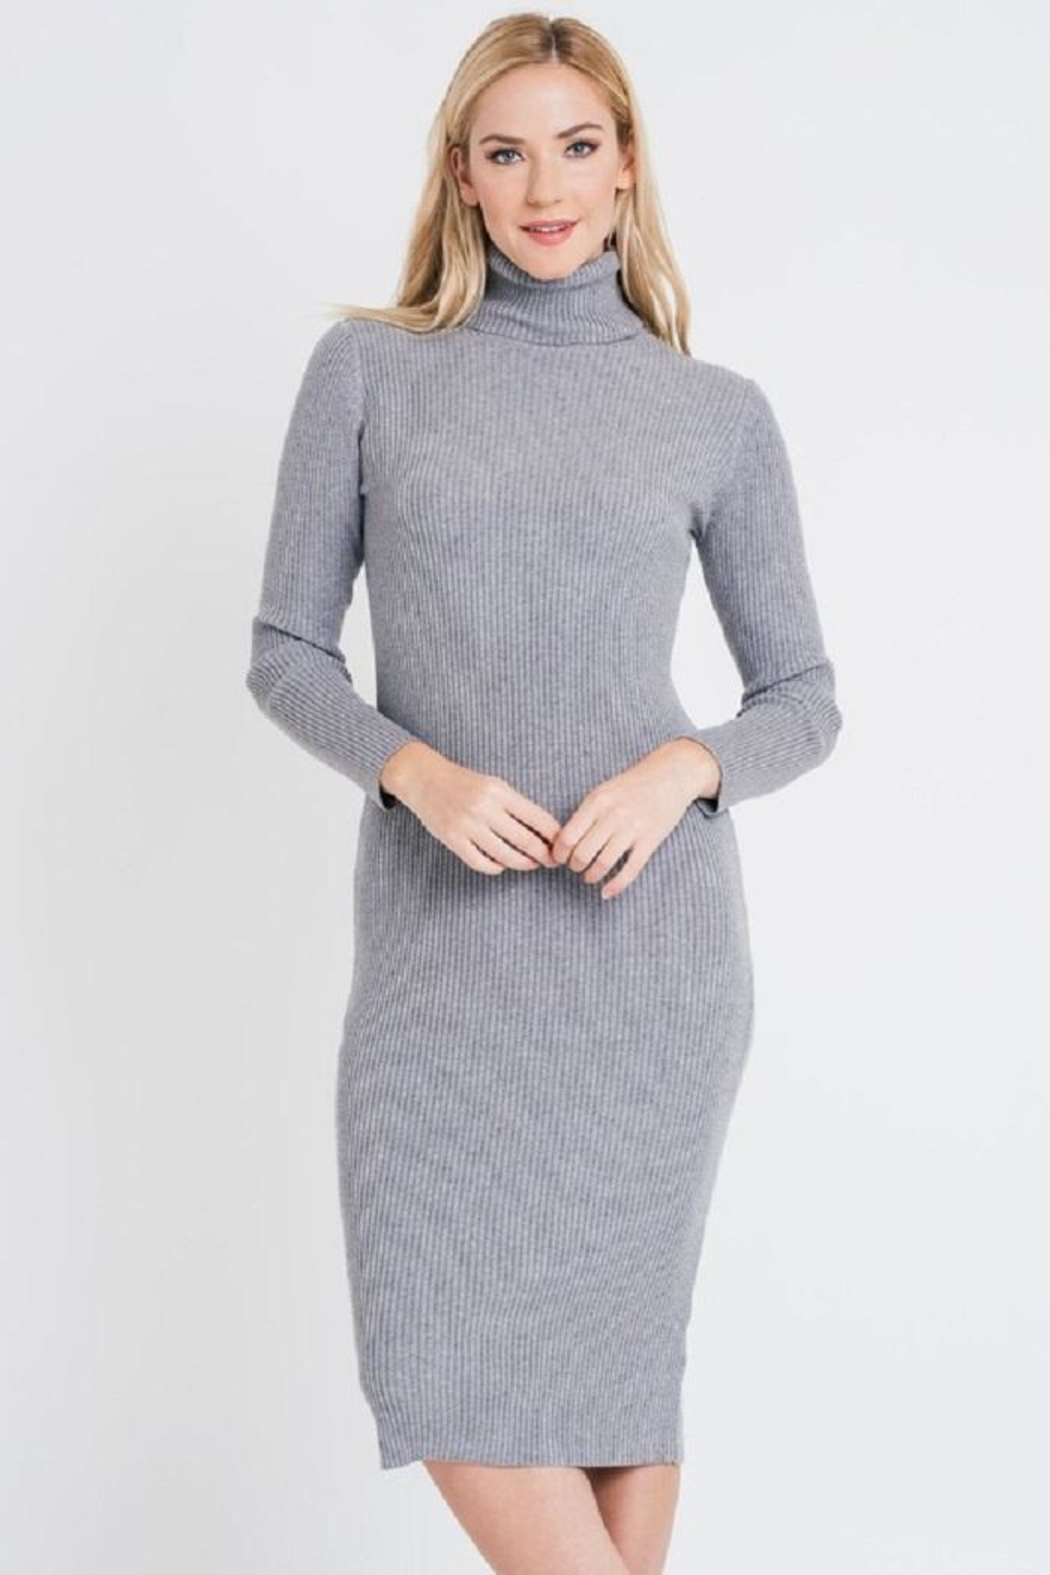 Renee C Turtleneck Sweater Dress - Main Image